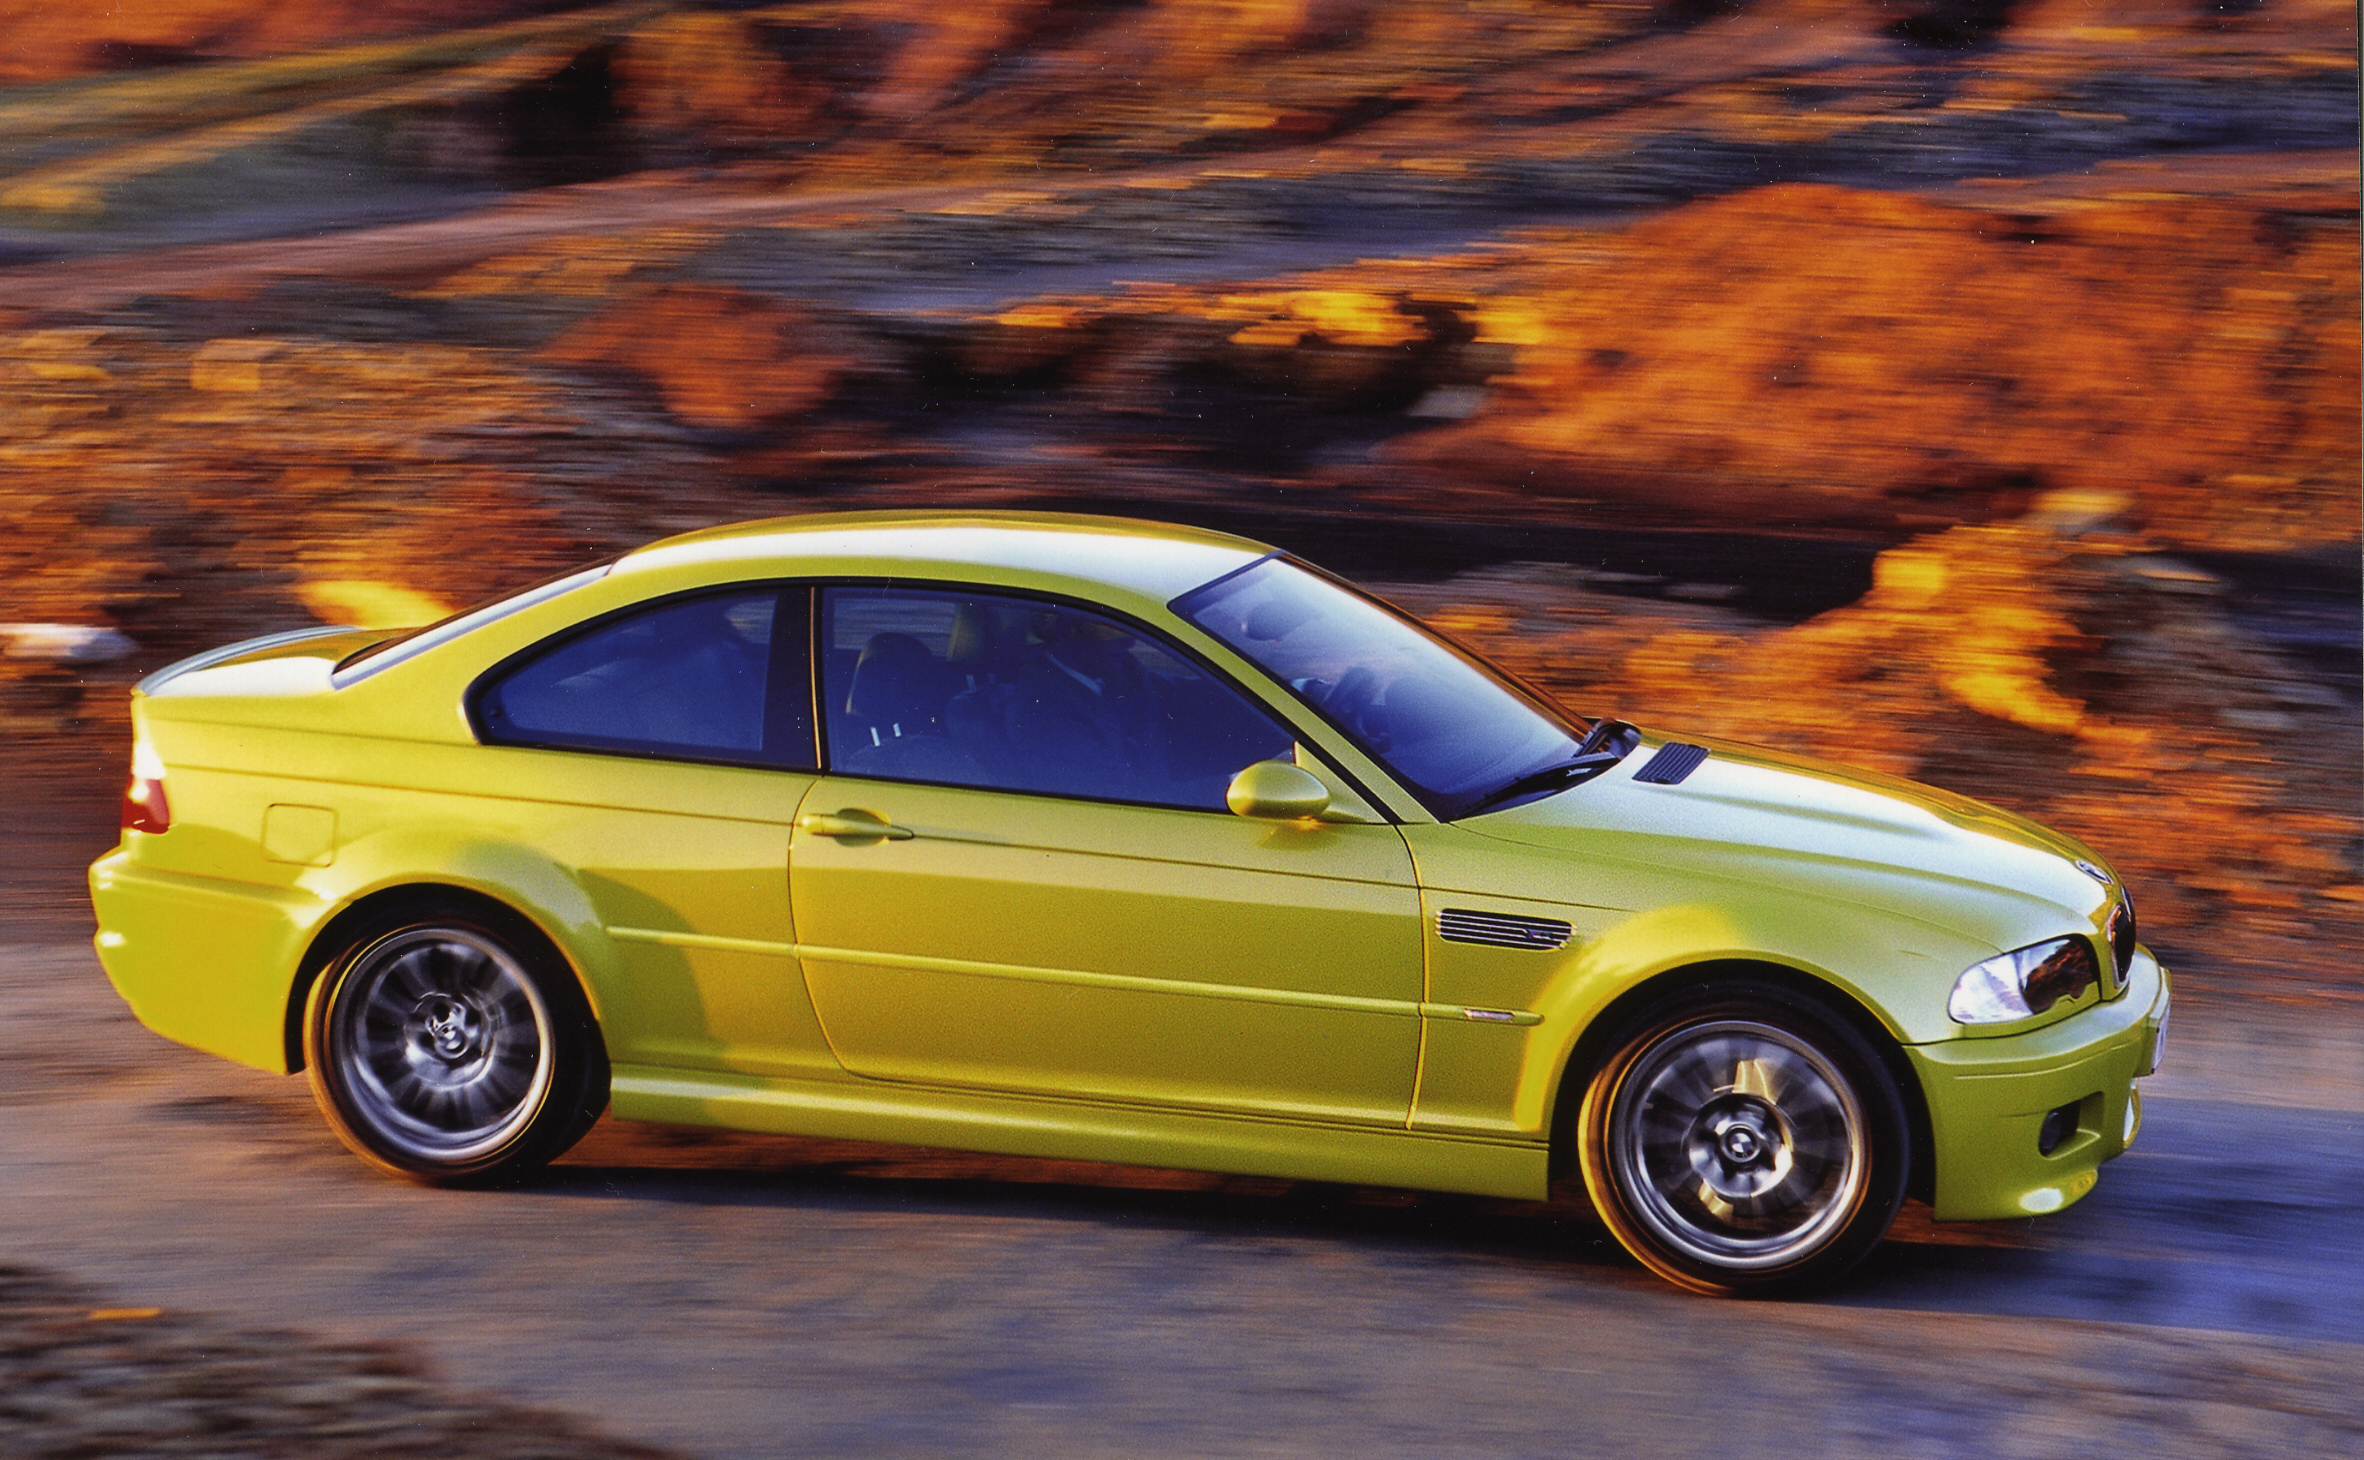 E46 M3 6 Reasons To Own One